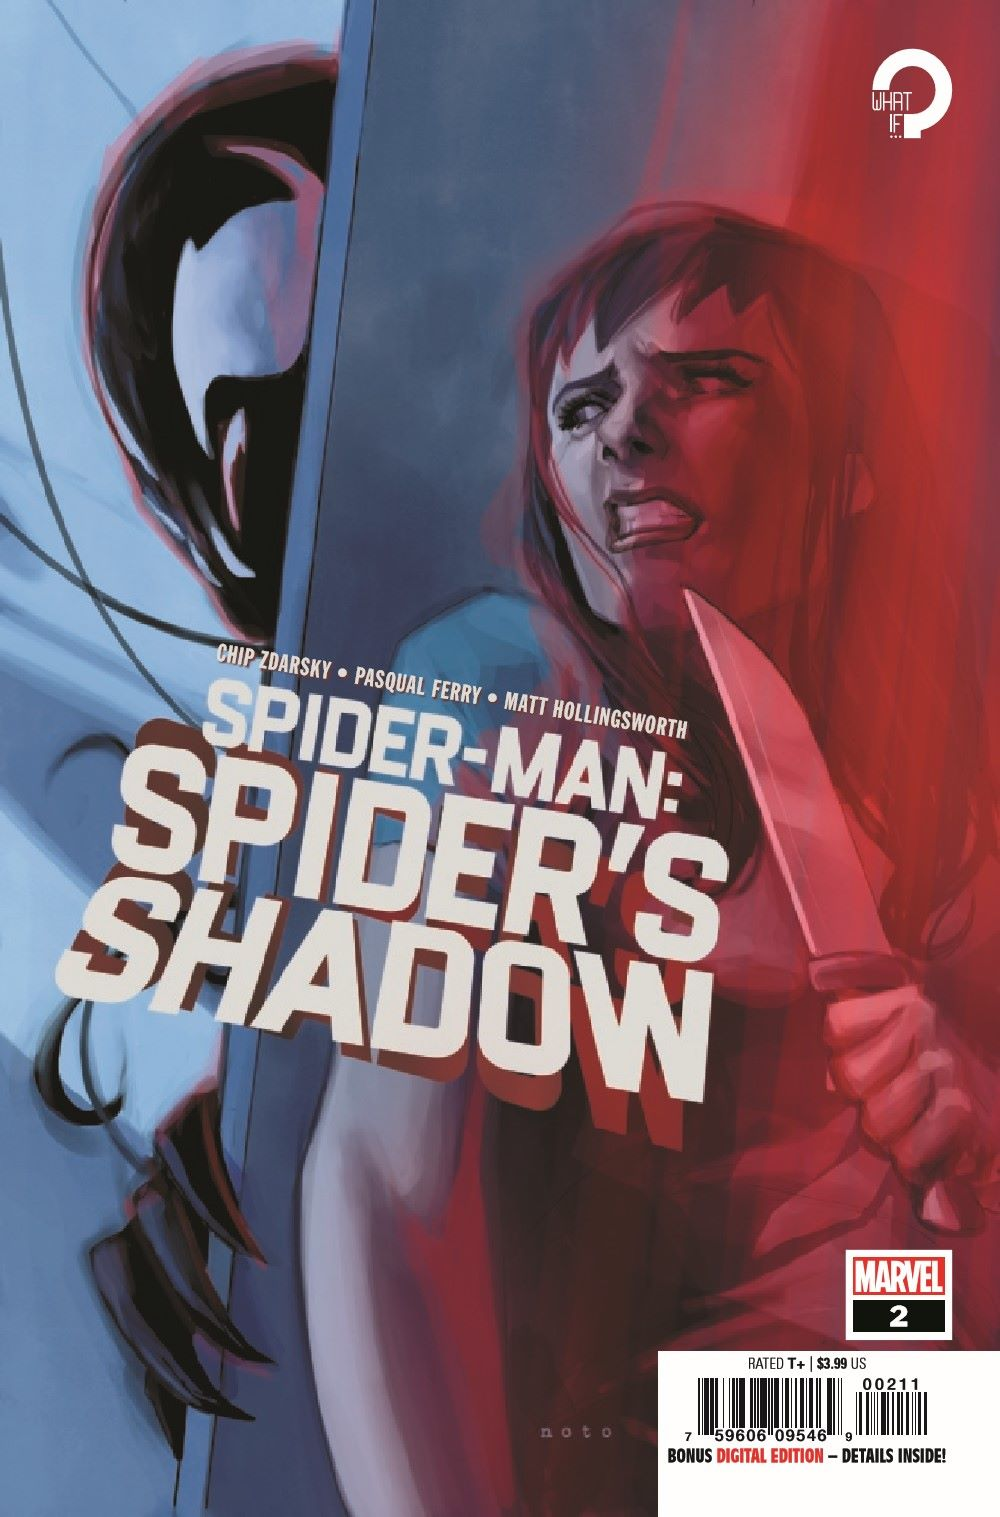 SMSPIDERSHADOW2021002_Preview-1 ComicList Previews: SPIDER-MAN SPIDER'S SHADOW #2 (OF 4)